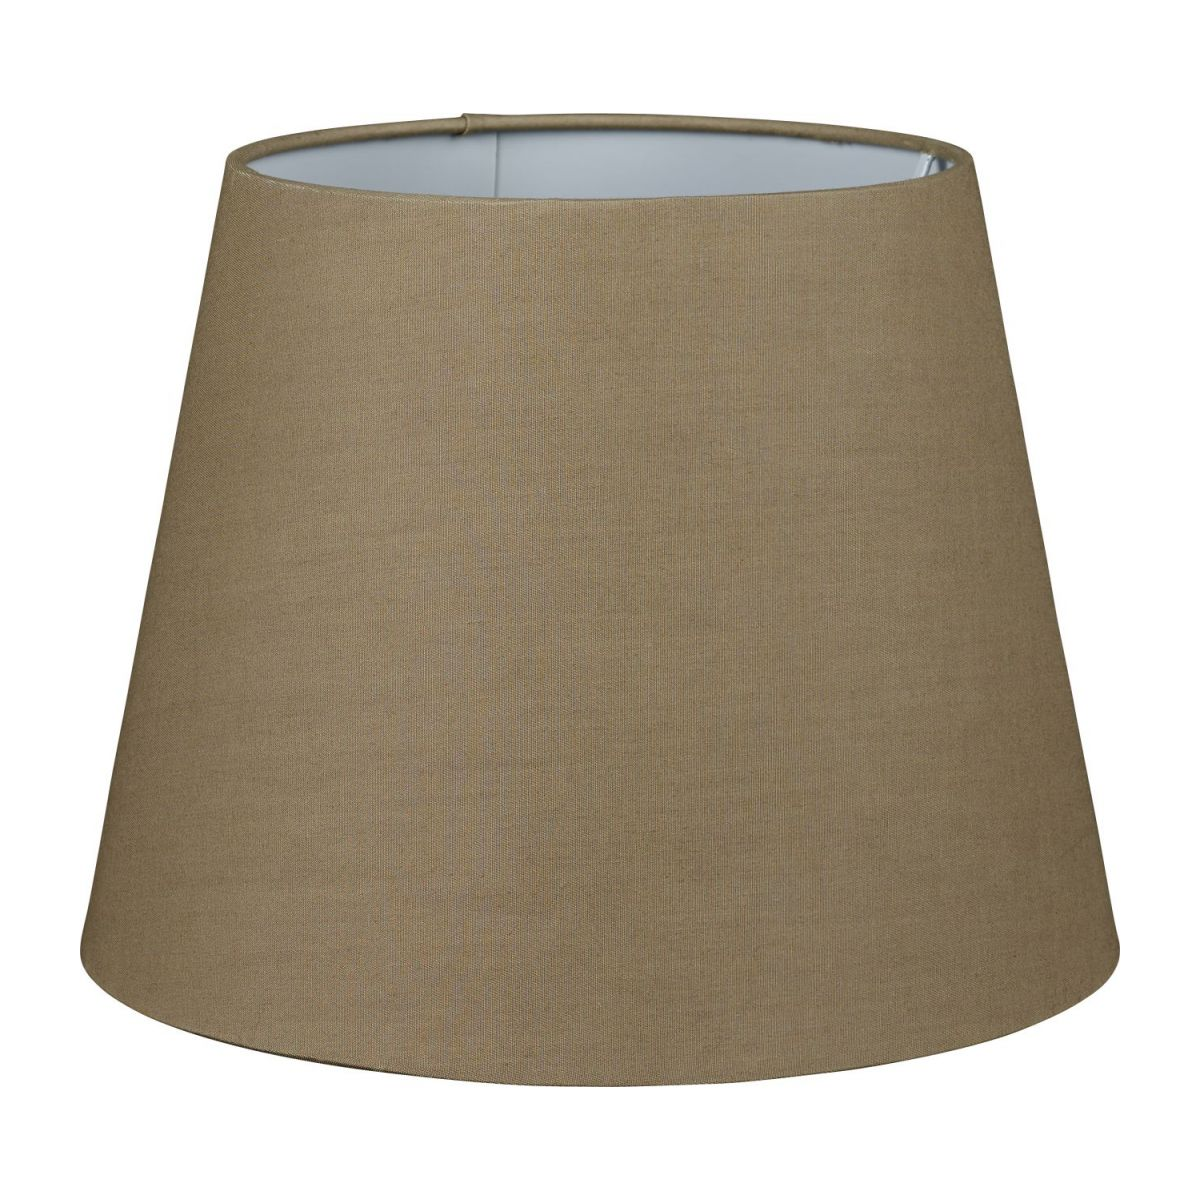 Brownish-grey lampshade n°1